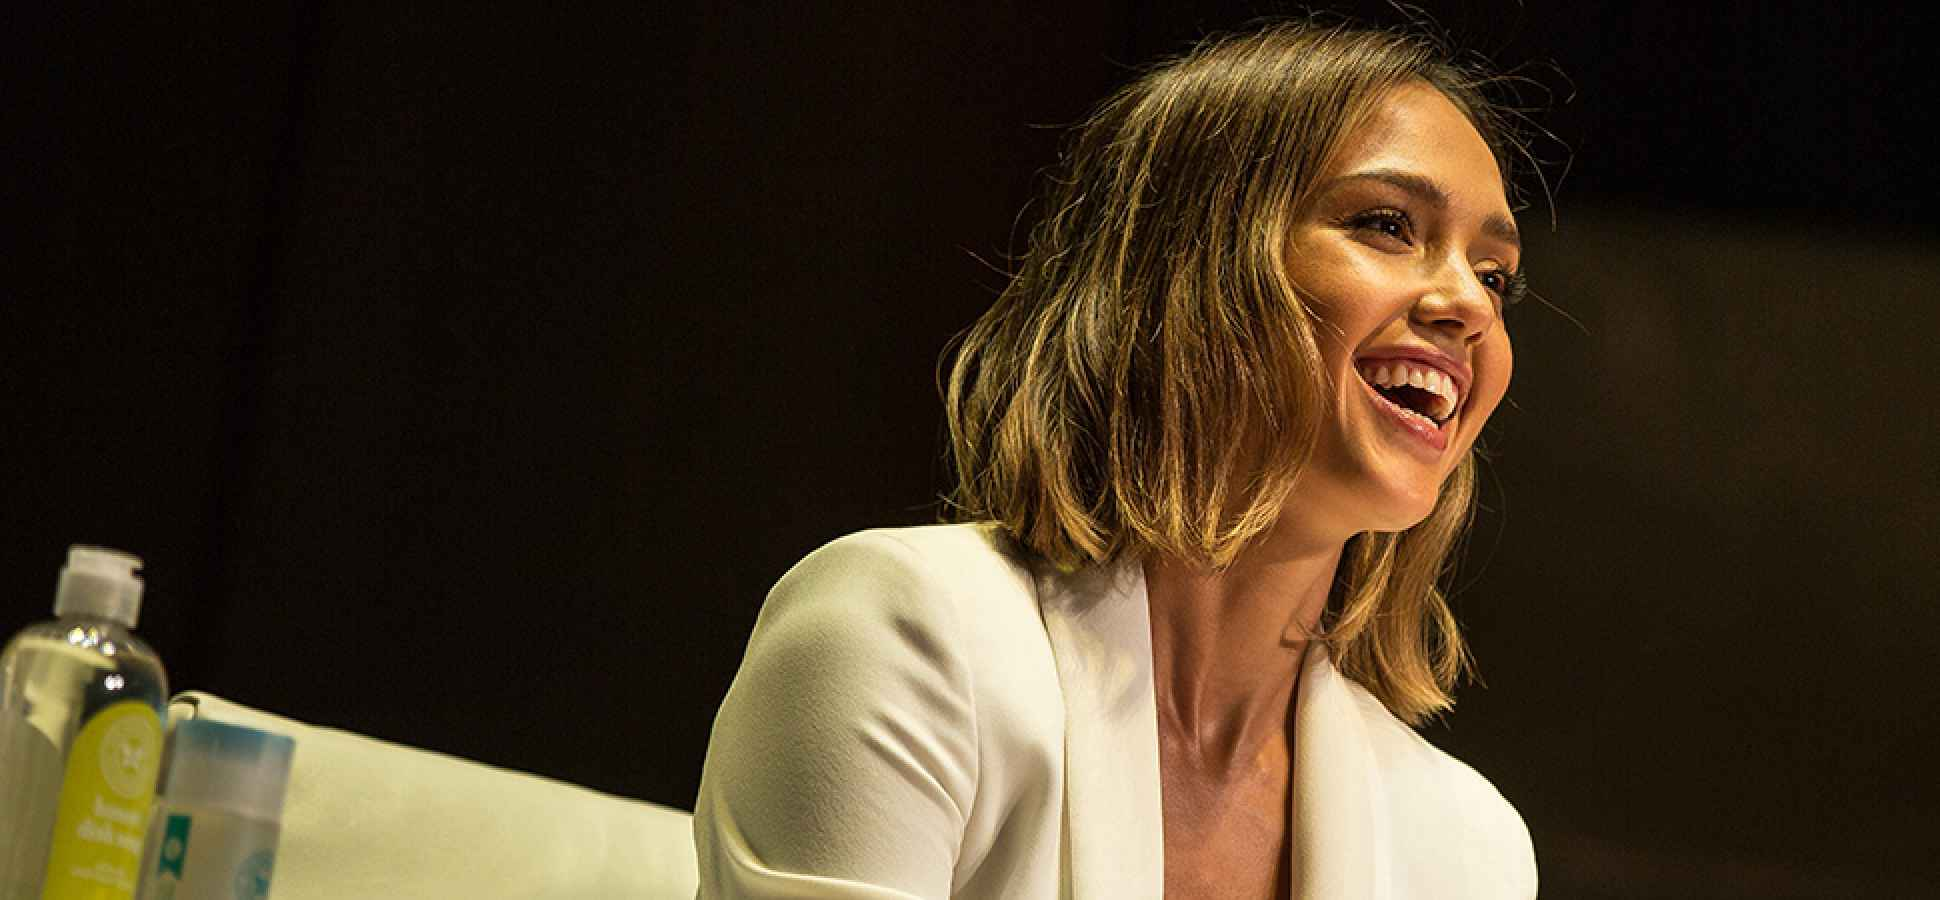 Jessica Alba's Step-by-Step Guide to Overcoming Every Doubt About Her Startup